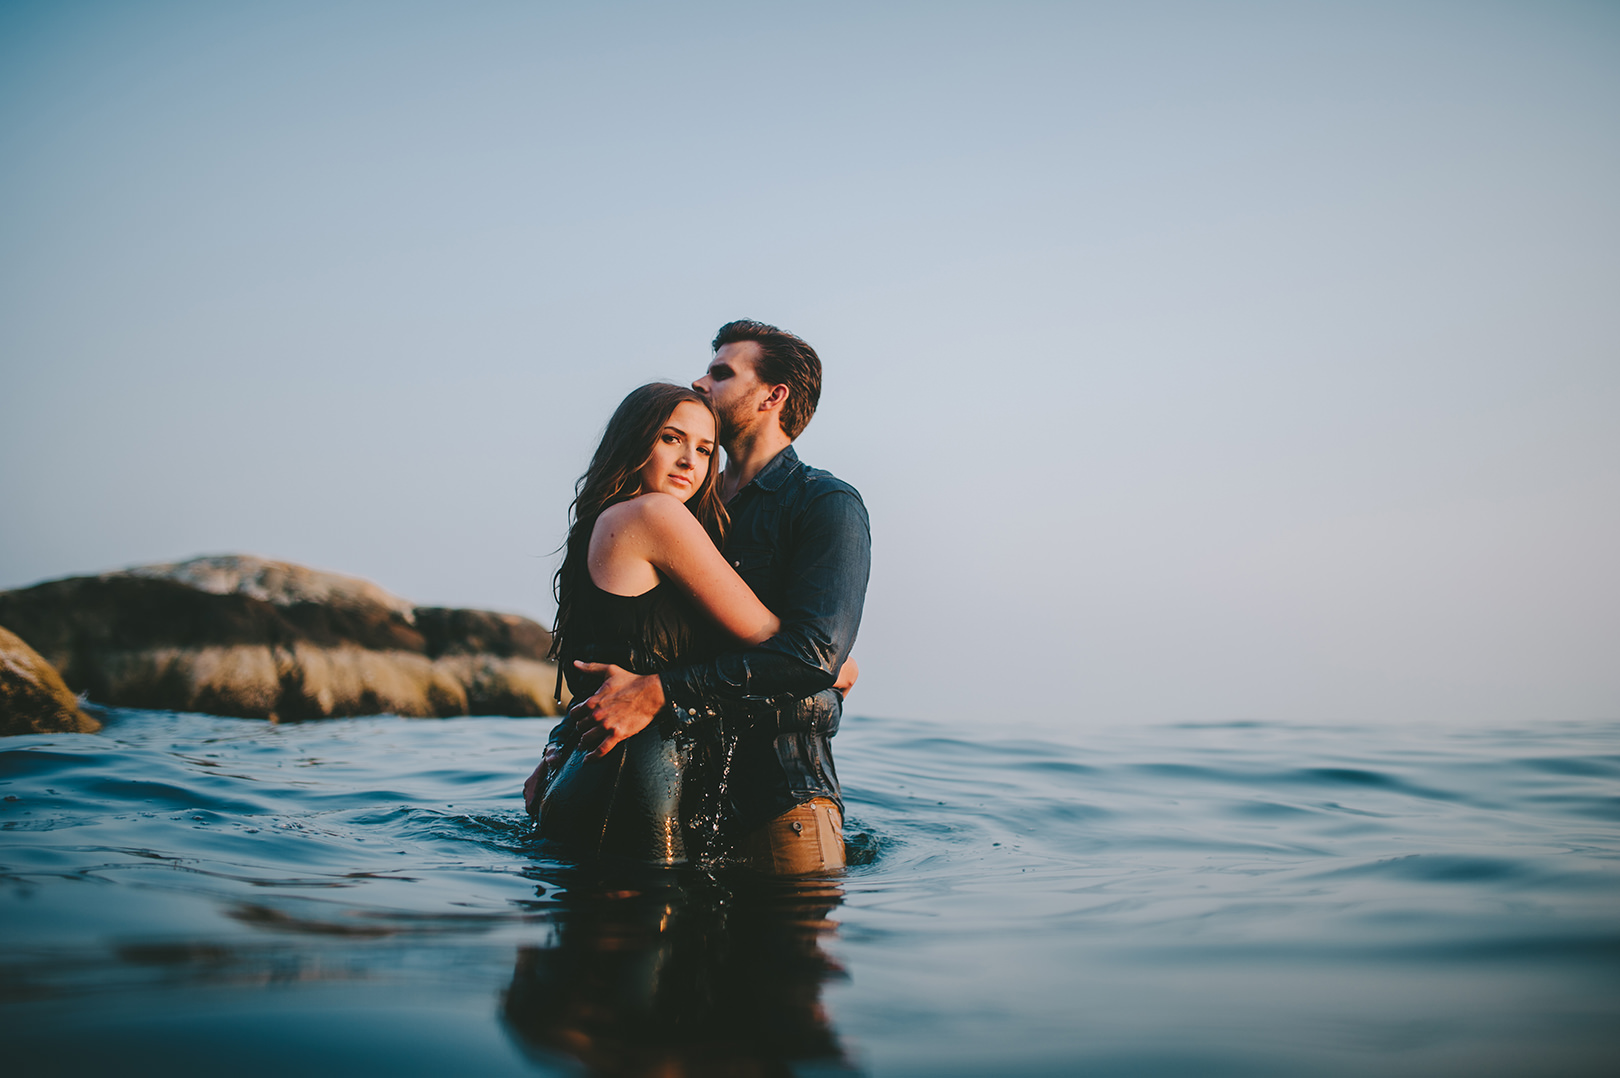 Engagement photography British Columbia